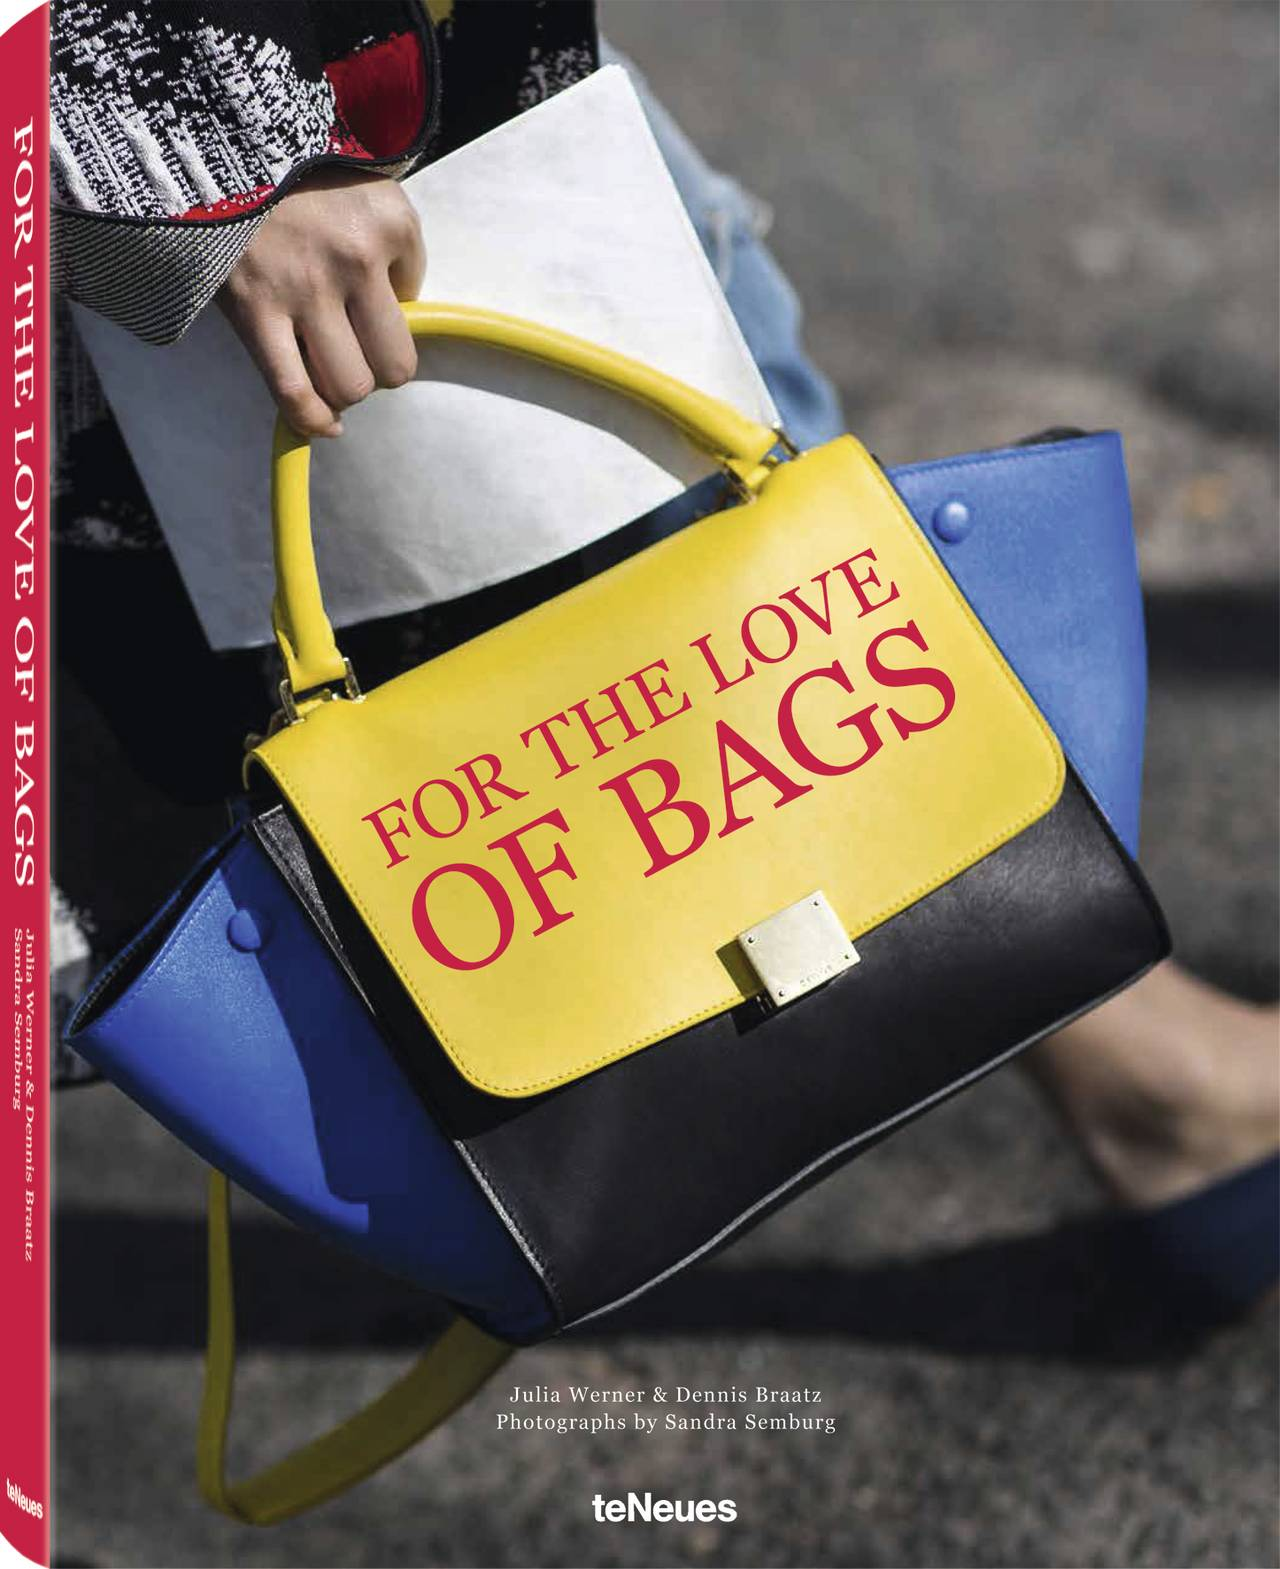 © For the Love of Bags, Julia Werner & Dennis Braatz, Photographs by Sandra Semburg, published by teNeues, www.teneues.com. Photo © 2015 Sandra Semburg. All rights reserved